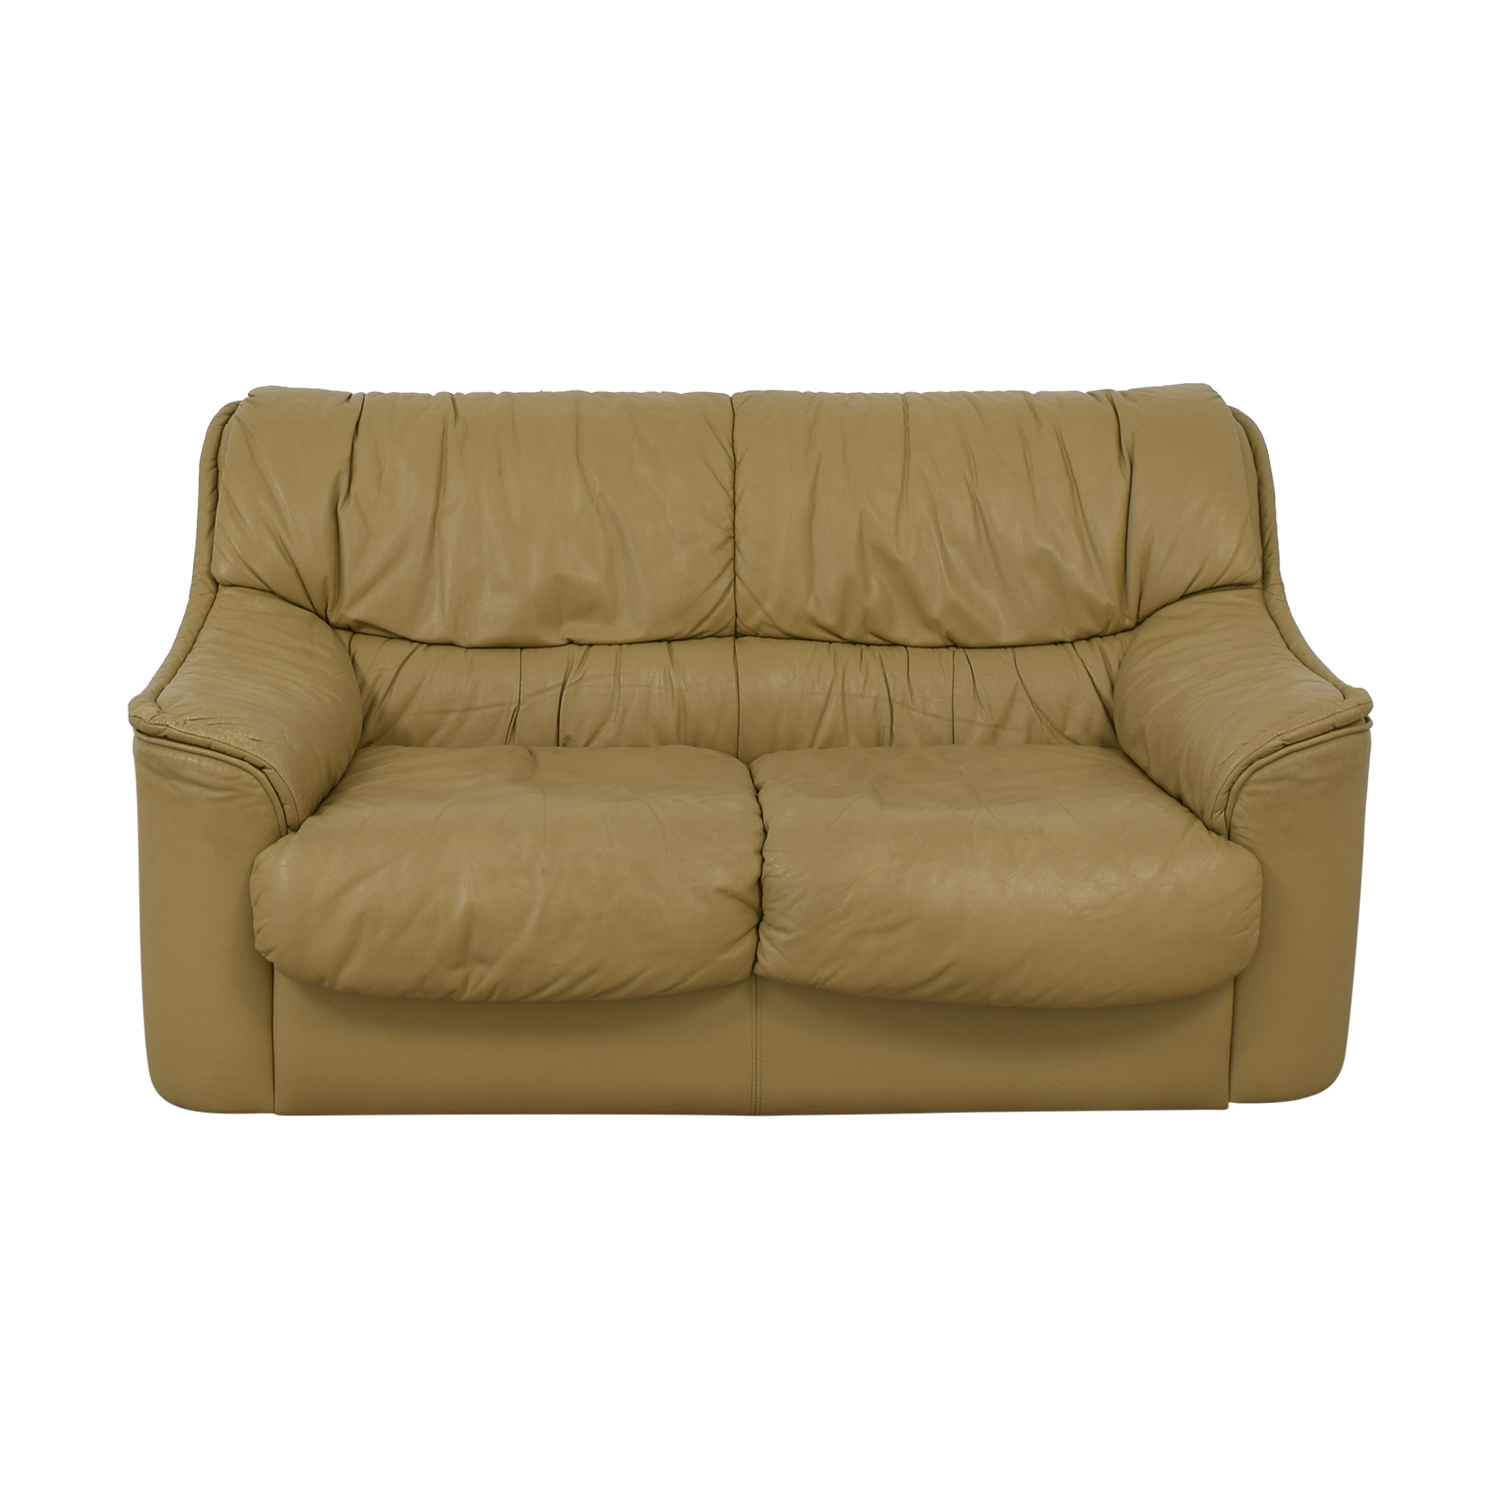 Taupe Two-Cushion Sofa nj